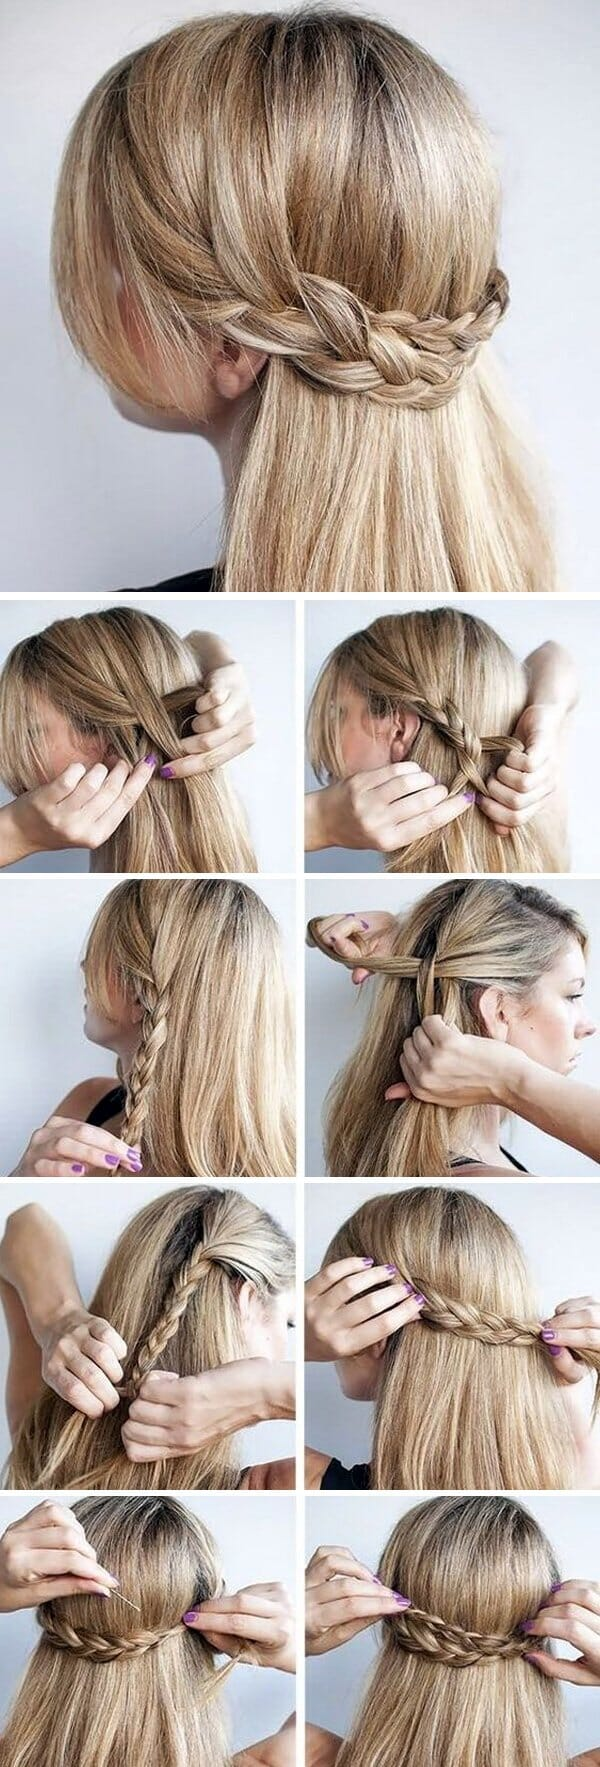 step by step braided hairstyle